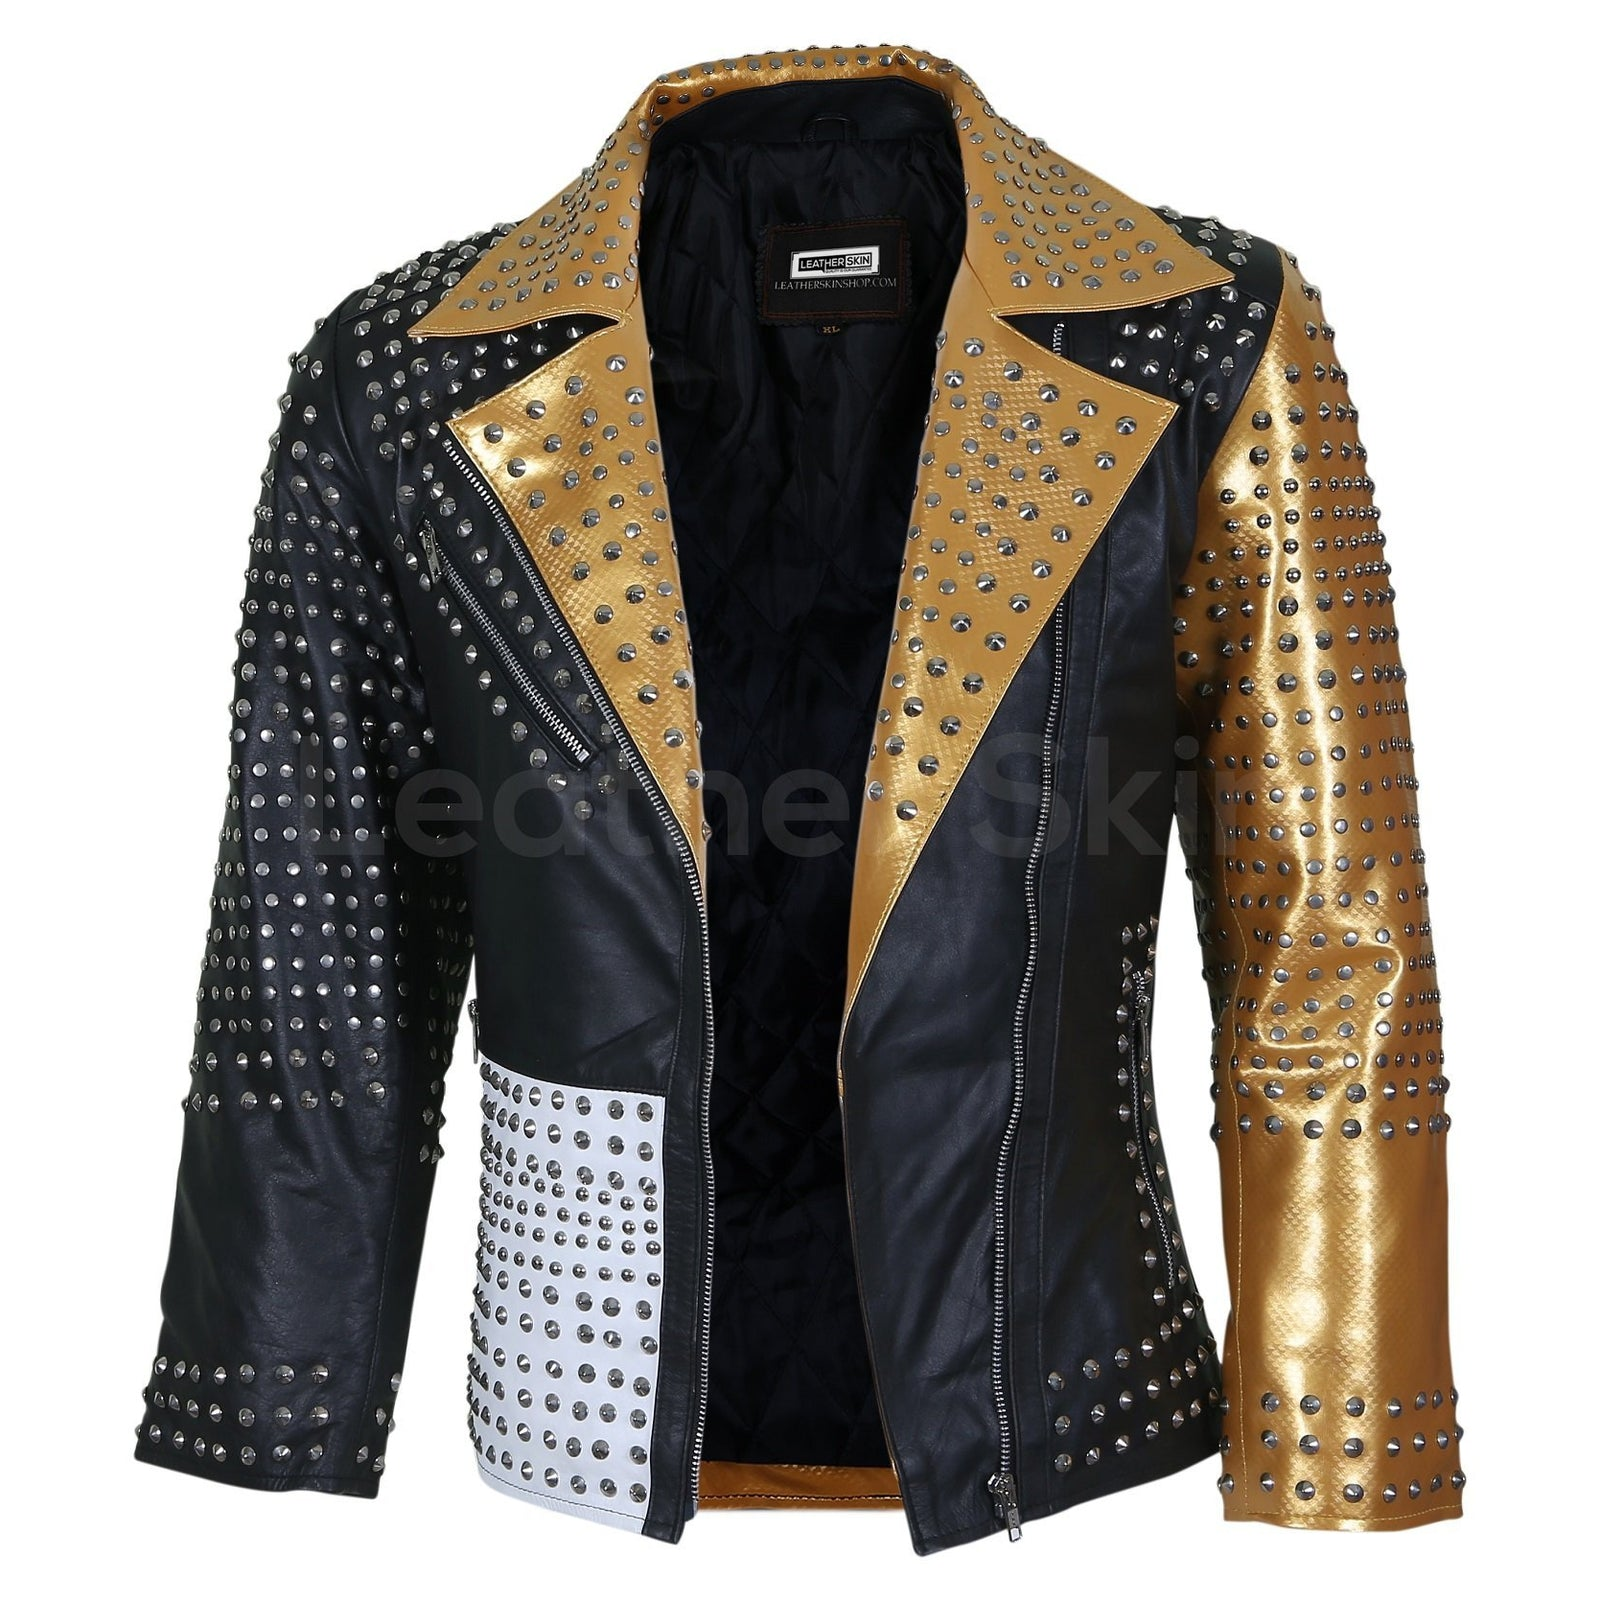 8b632cd947da Genuine Leather Jacket for Women   Buy Real Jackets Online - Leather ...